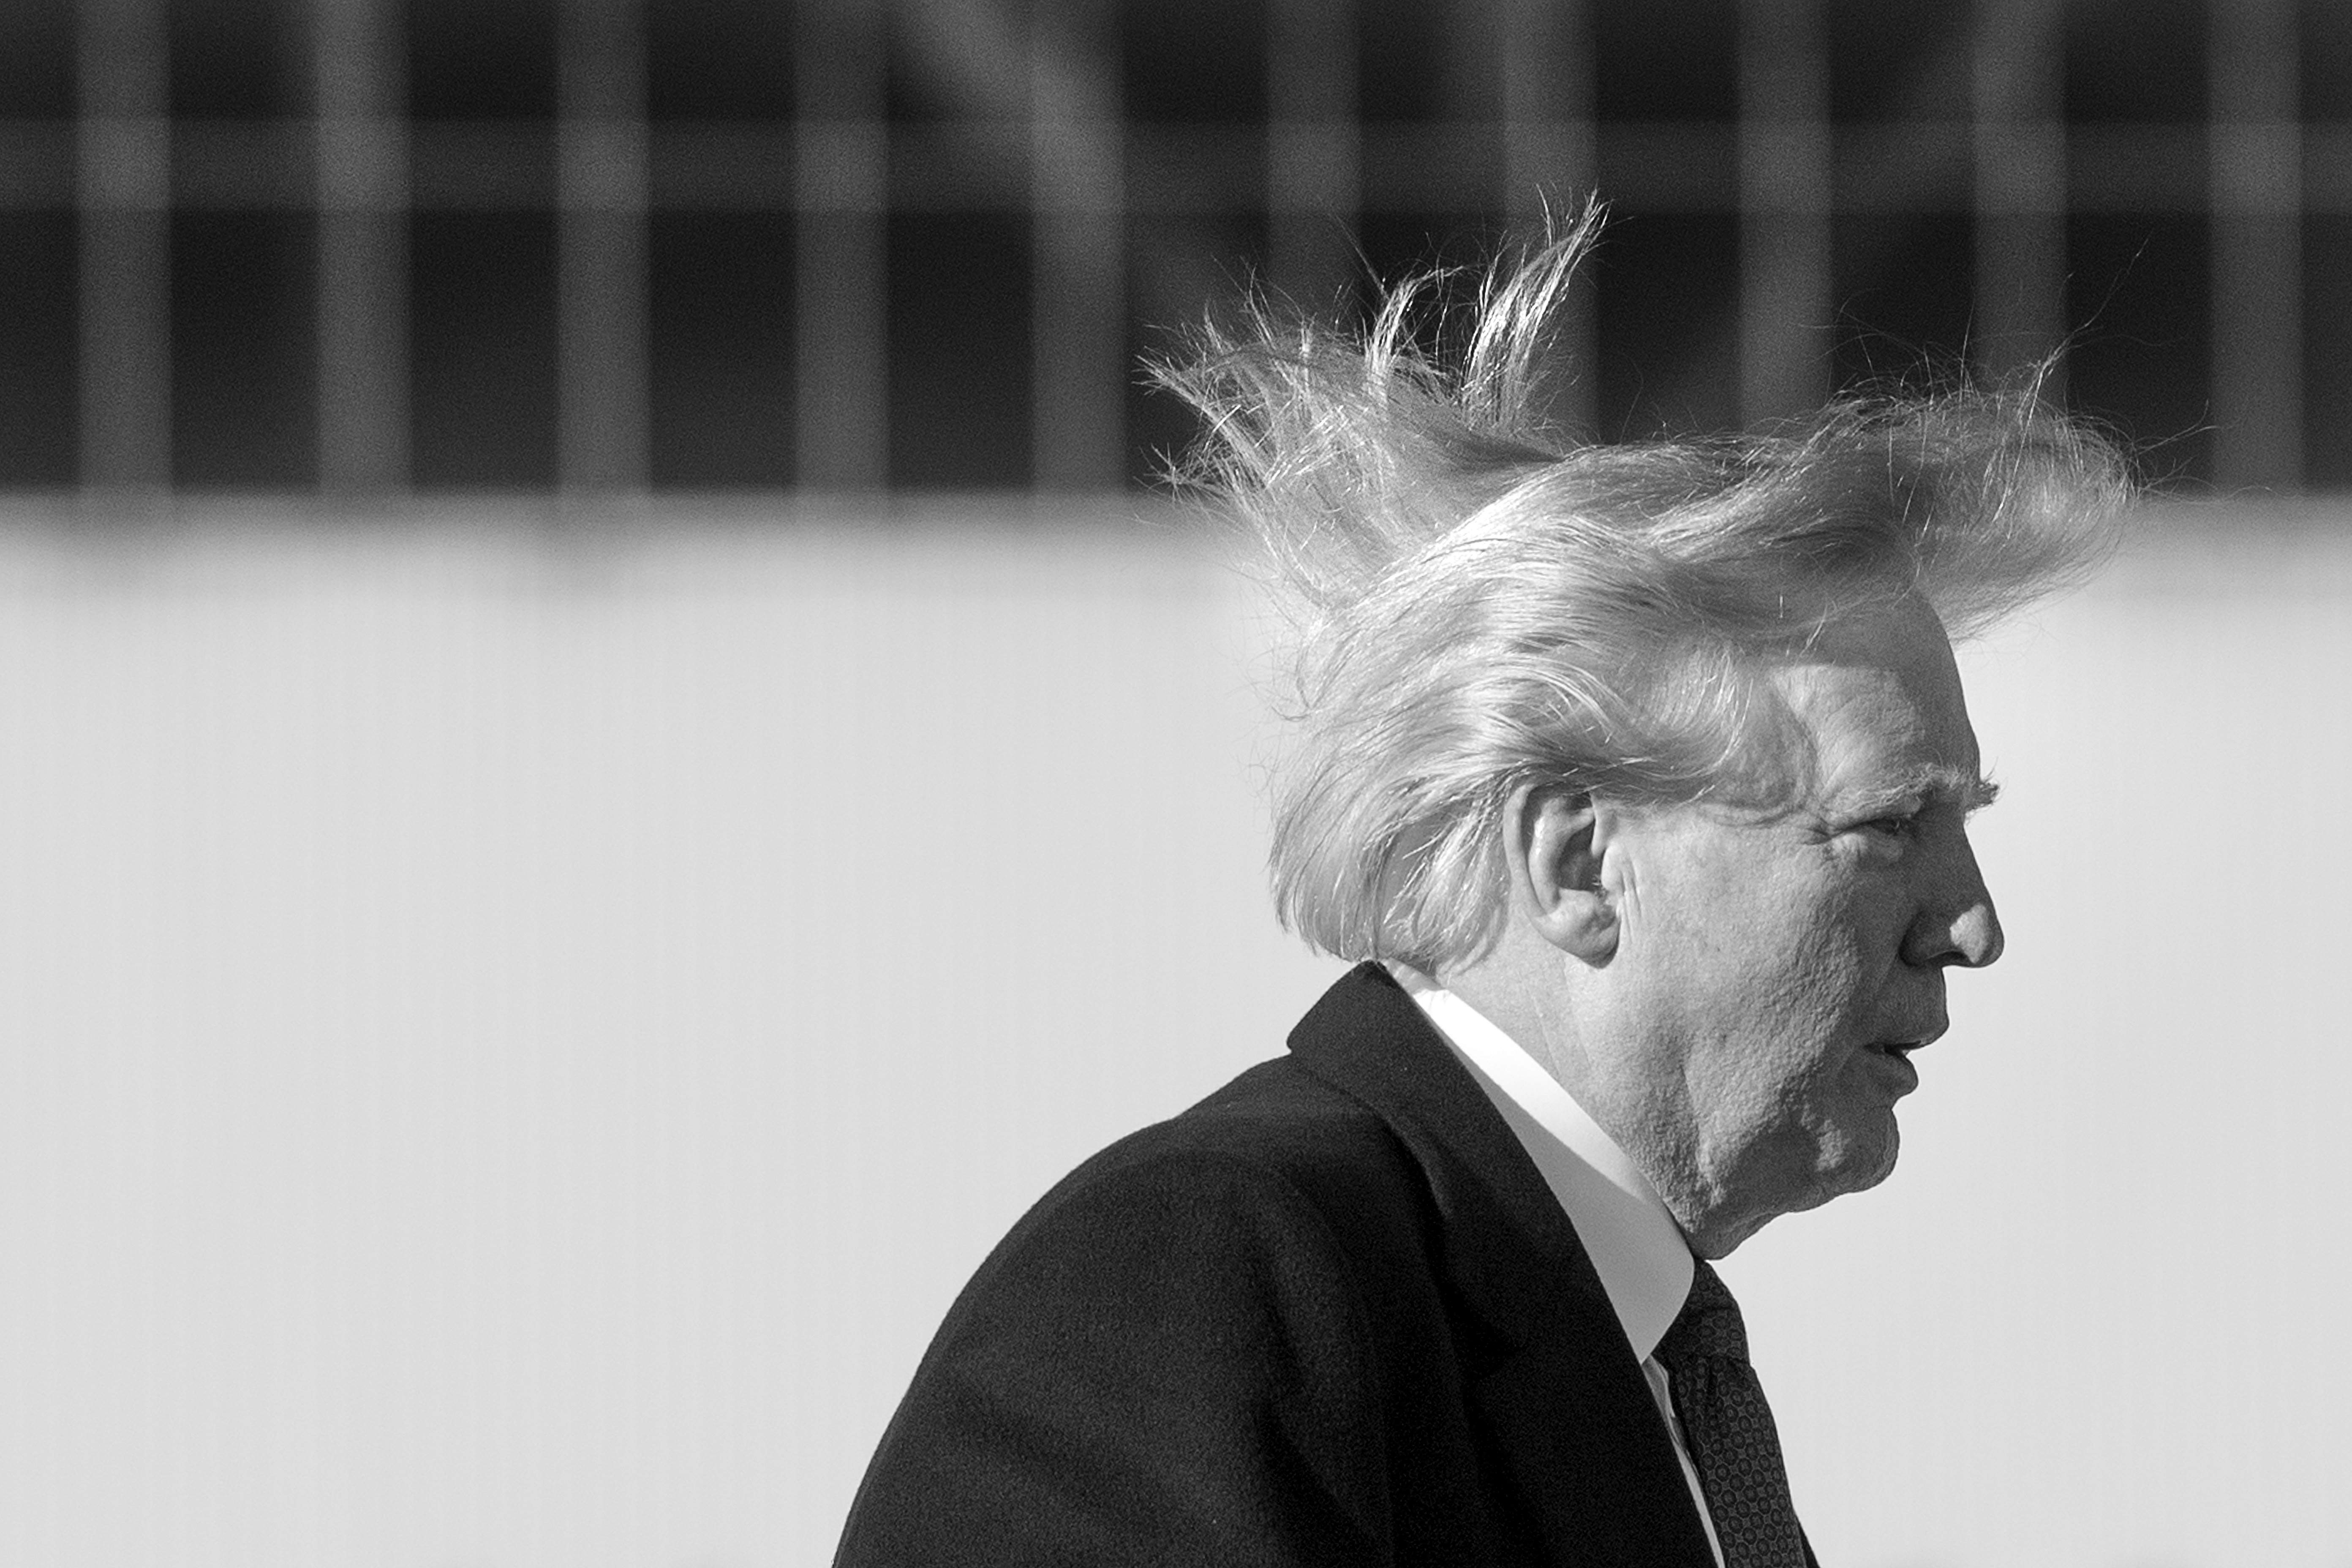 Donald Trump reportedly spent $70K to style his hair during 'The Apprentice. How does that compare to other stars?